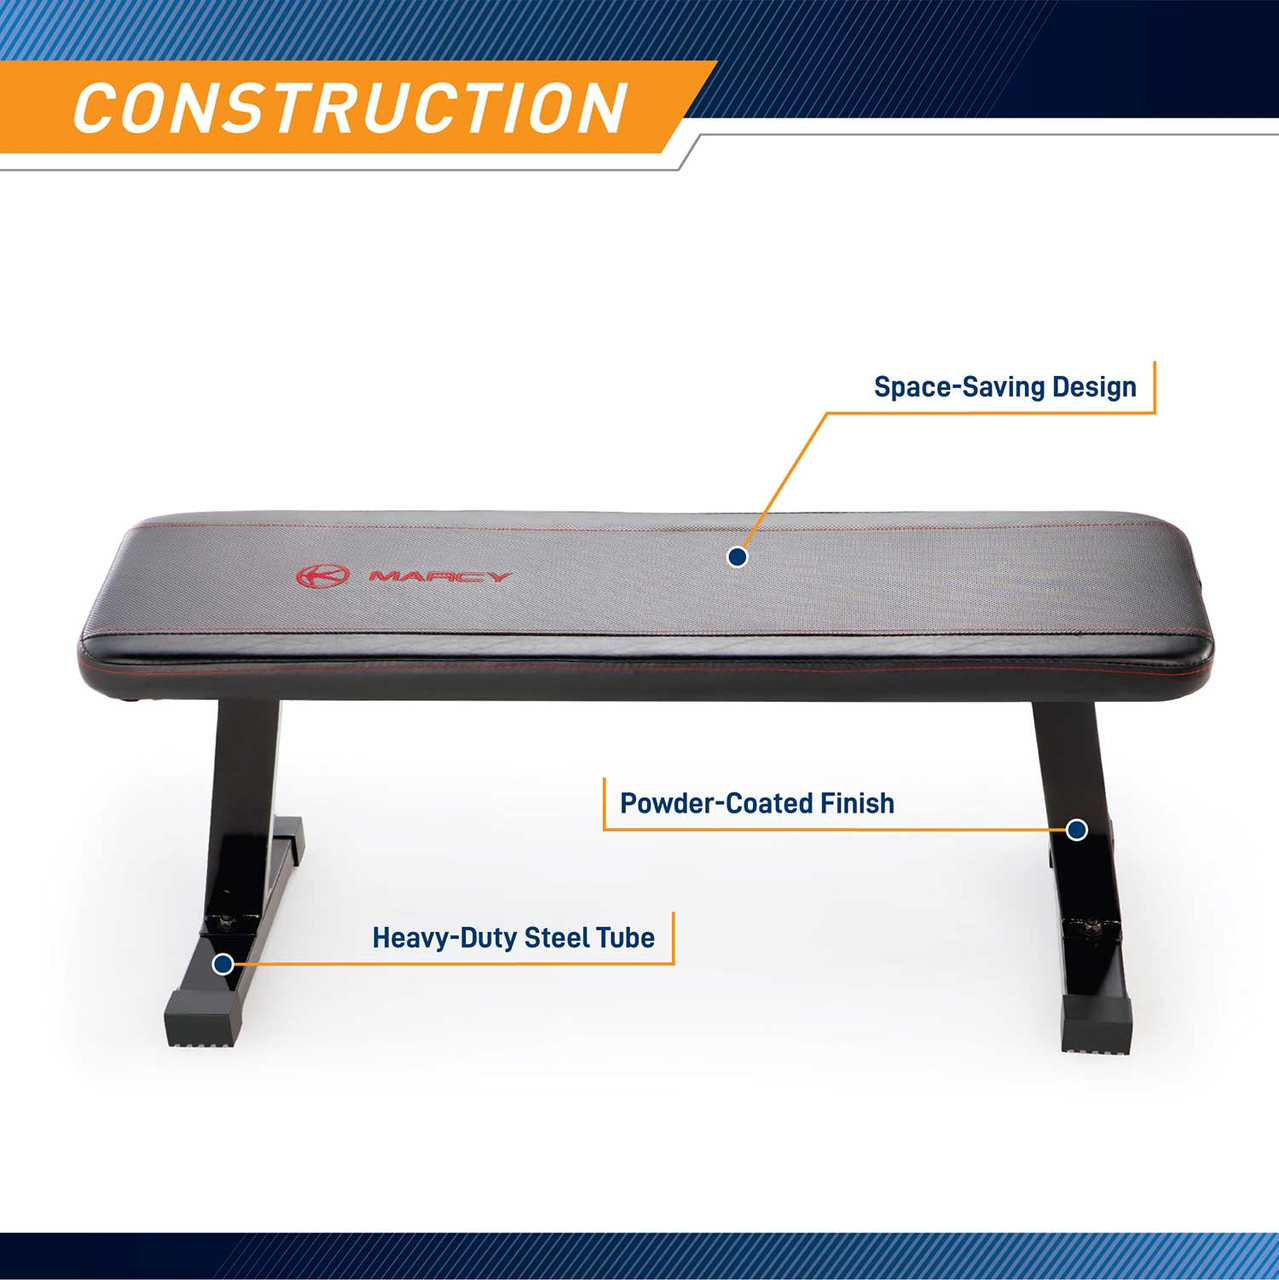 The Utility Flat Bench Marcy SB-315 has a durable construction